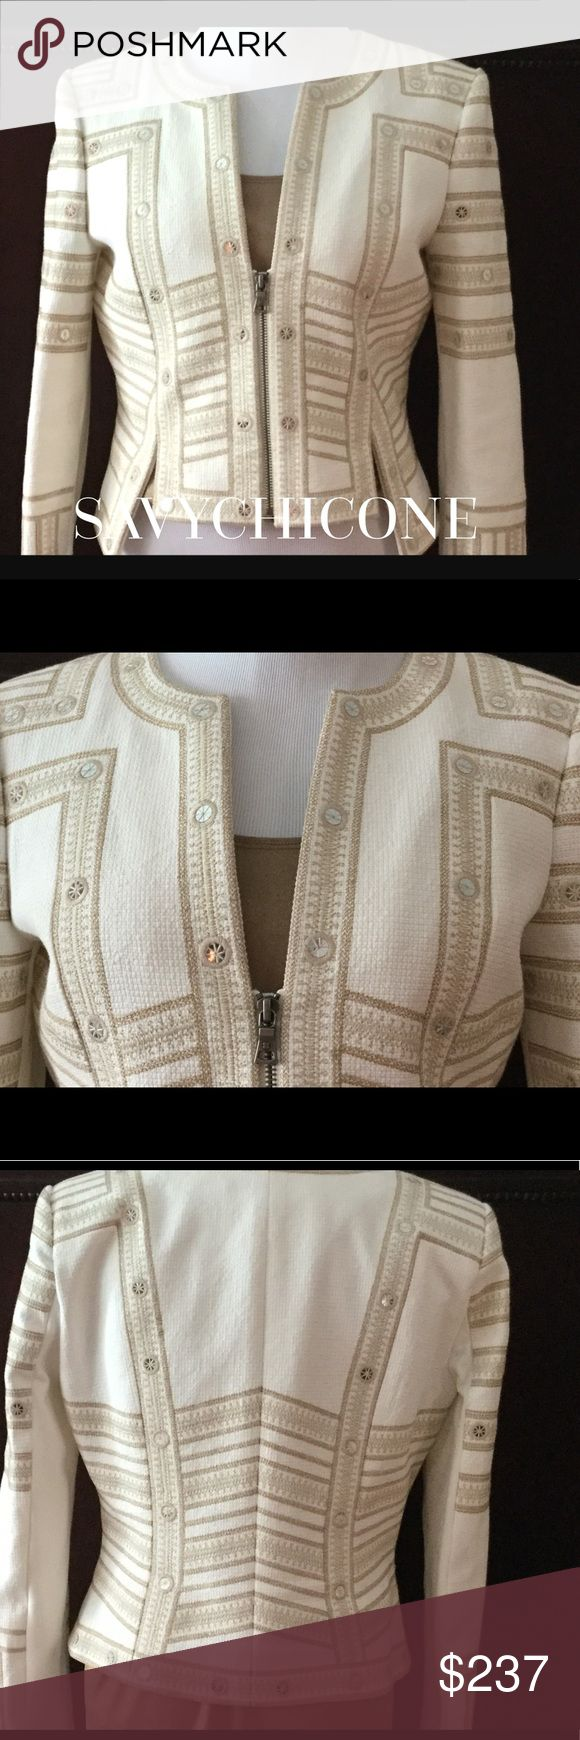 🌺GORGEOUS BCBG JACKET🌺 This jacket has beautiful details of embroidered mirrored disks.  Made to enhance your curves.  Unique cutout hem.  It is stunning!  Only worn once. BCBGMaxAzria Jackets & Coats